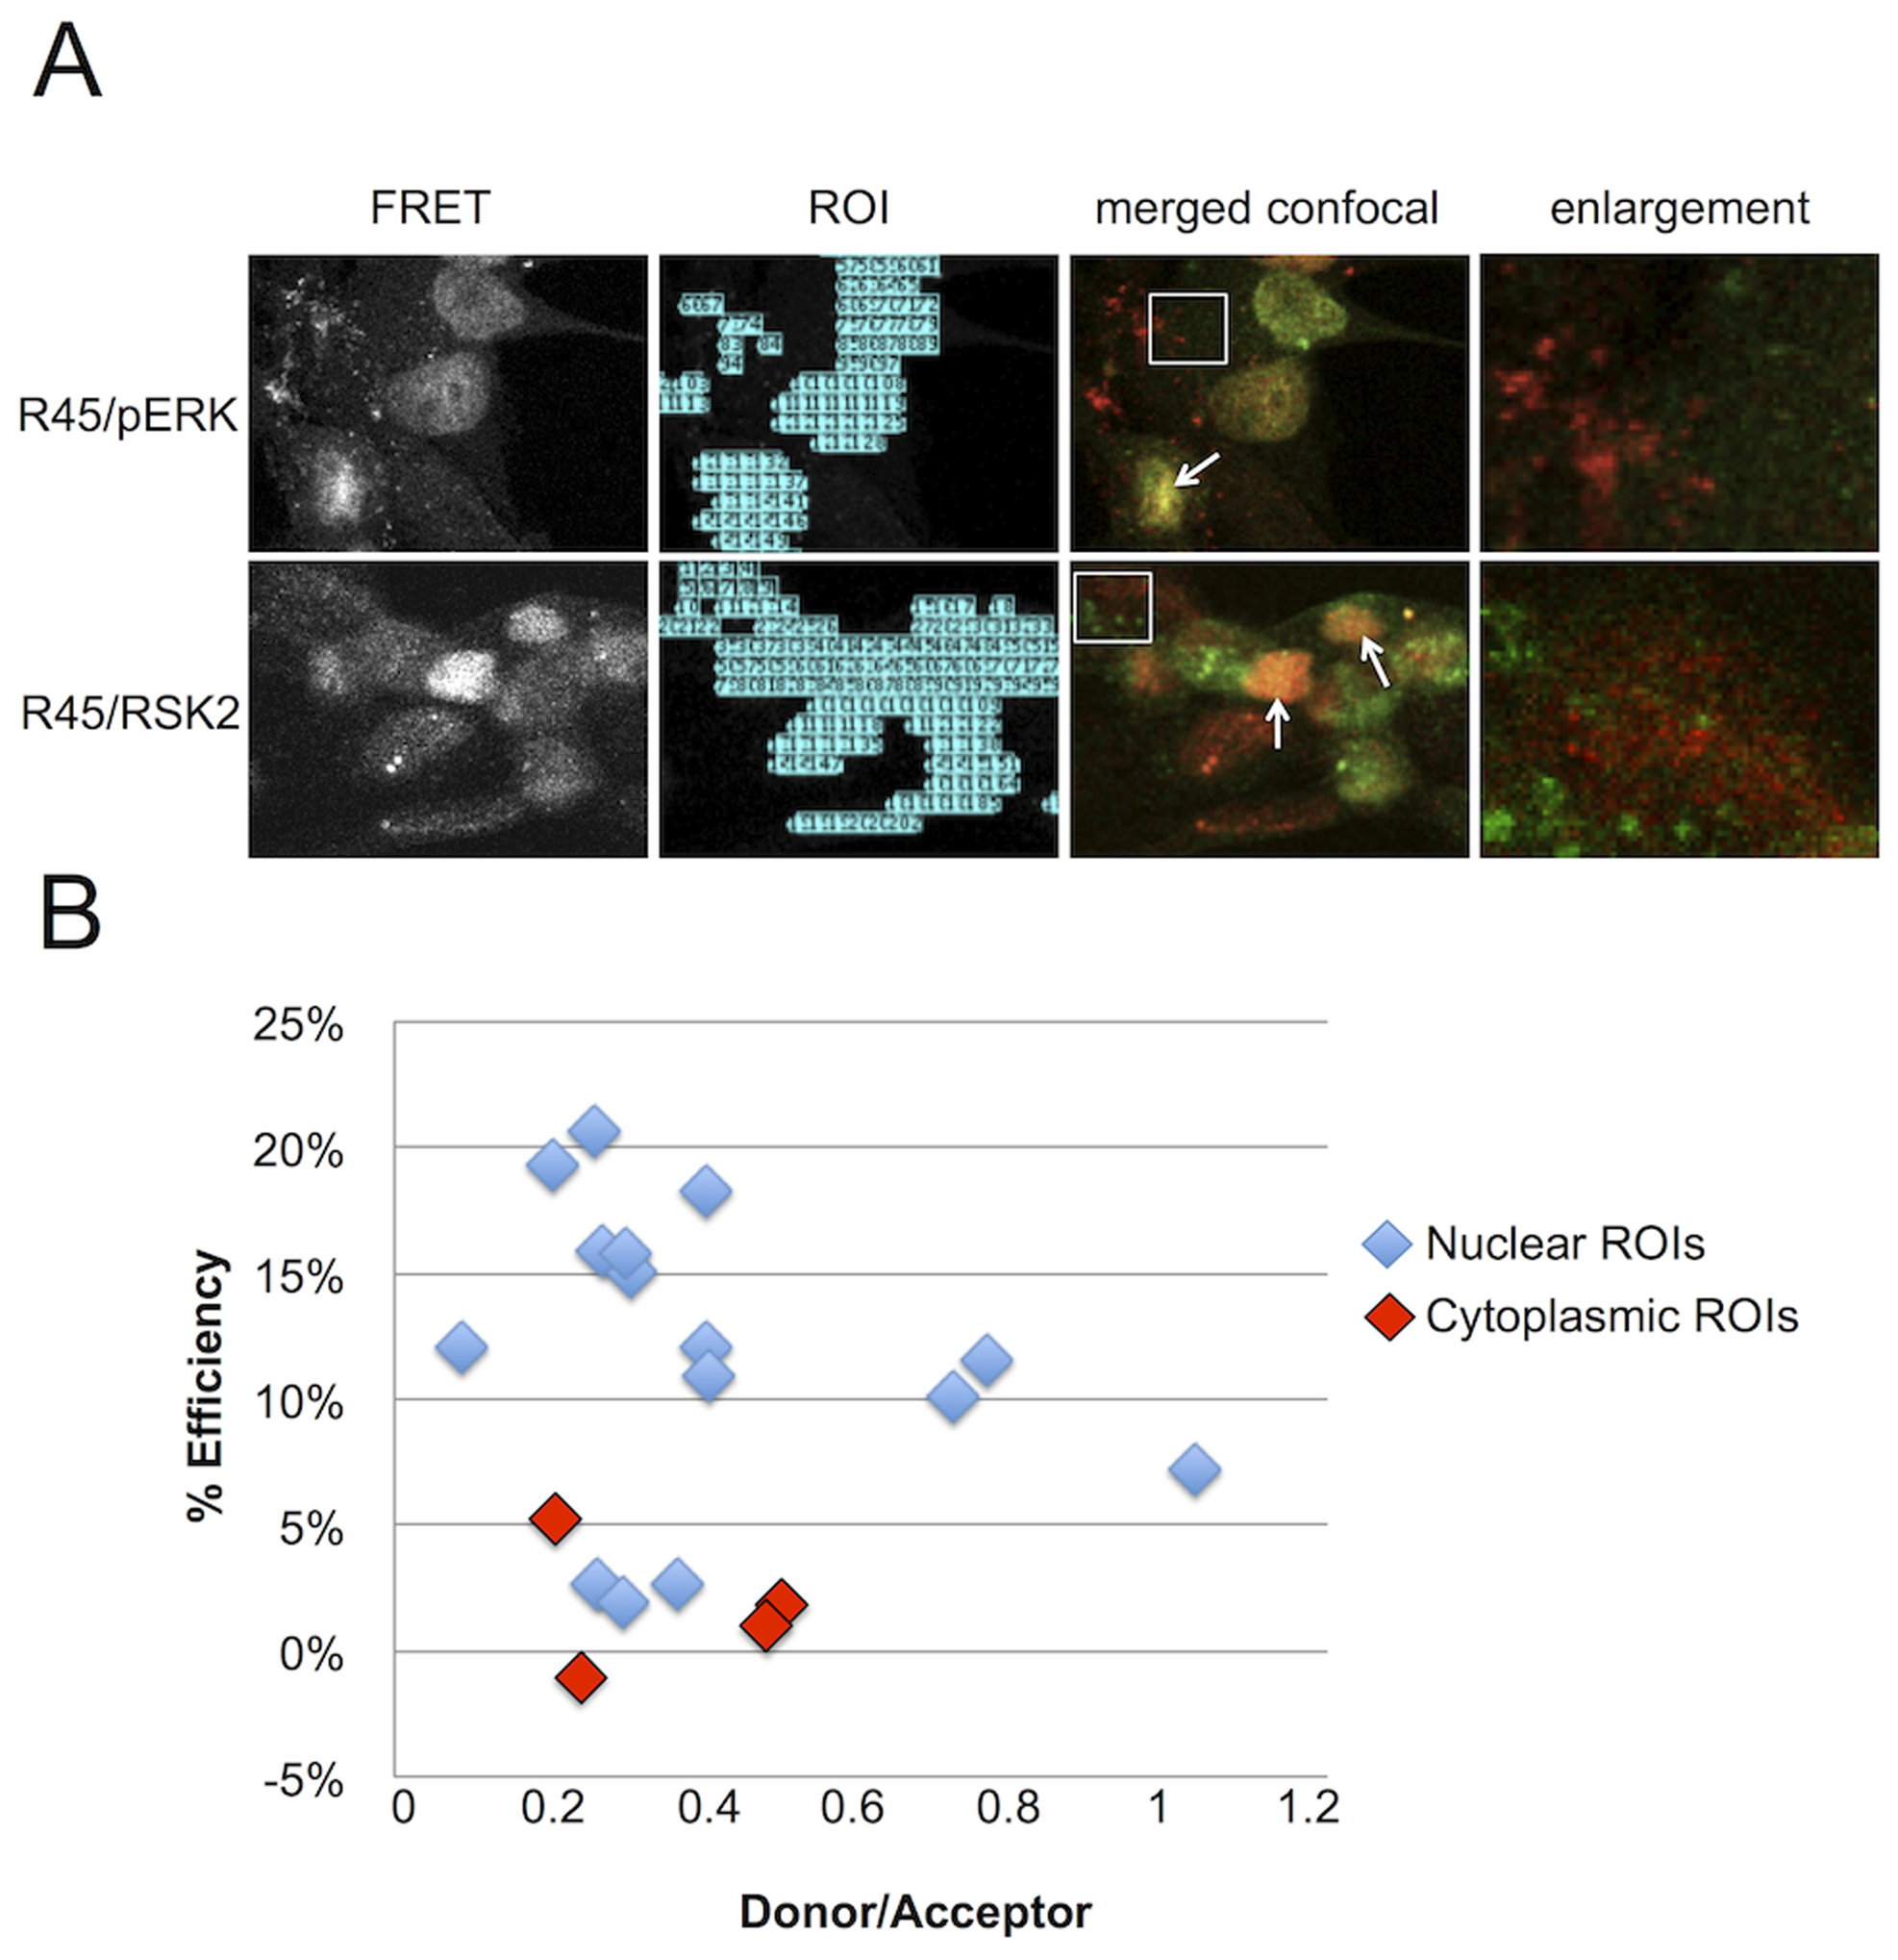 FRET analysis of RRV infected RhF reveals R45 in close proximity to both pERK2 and pRSK2 within the nuclei, but not the cytoplasm.